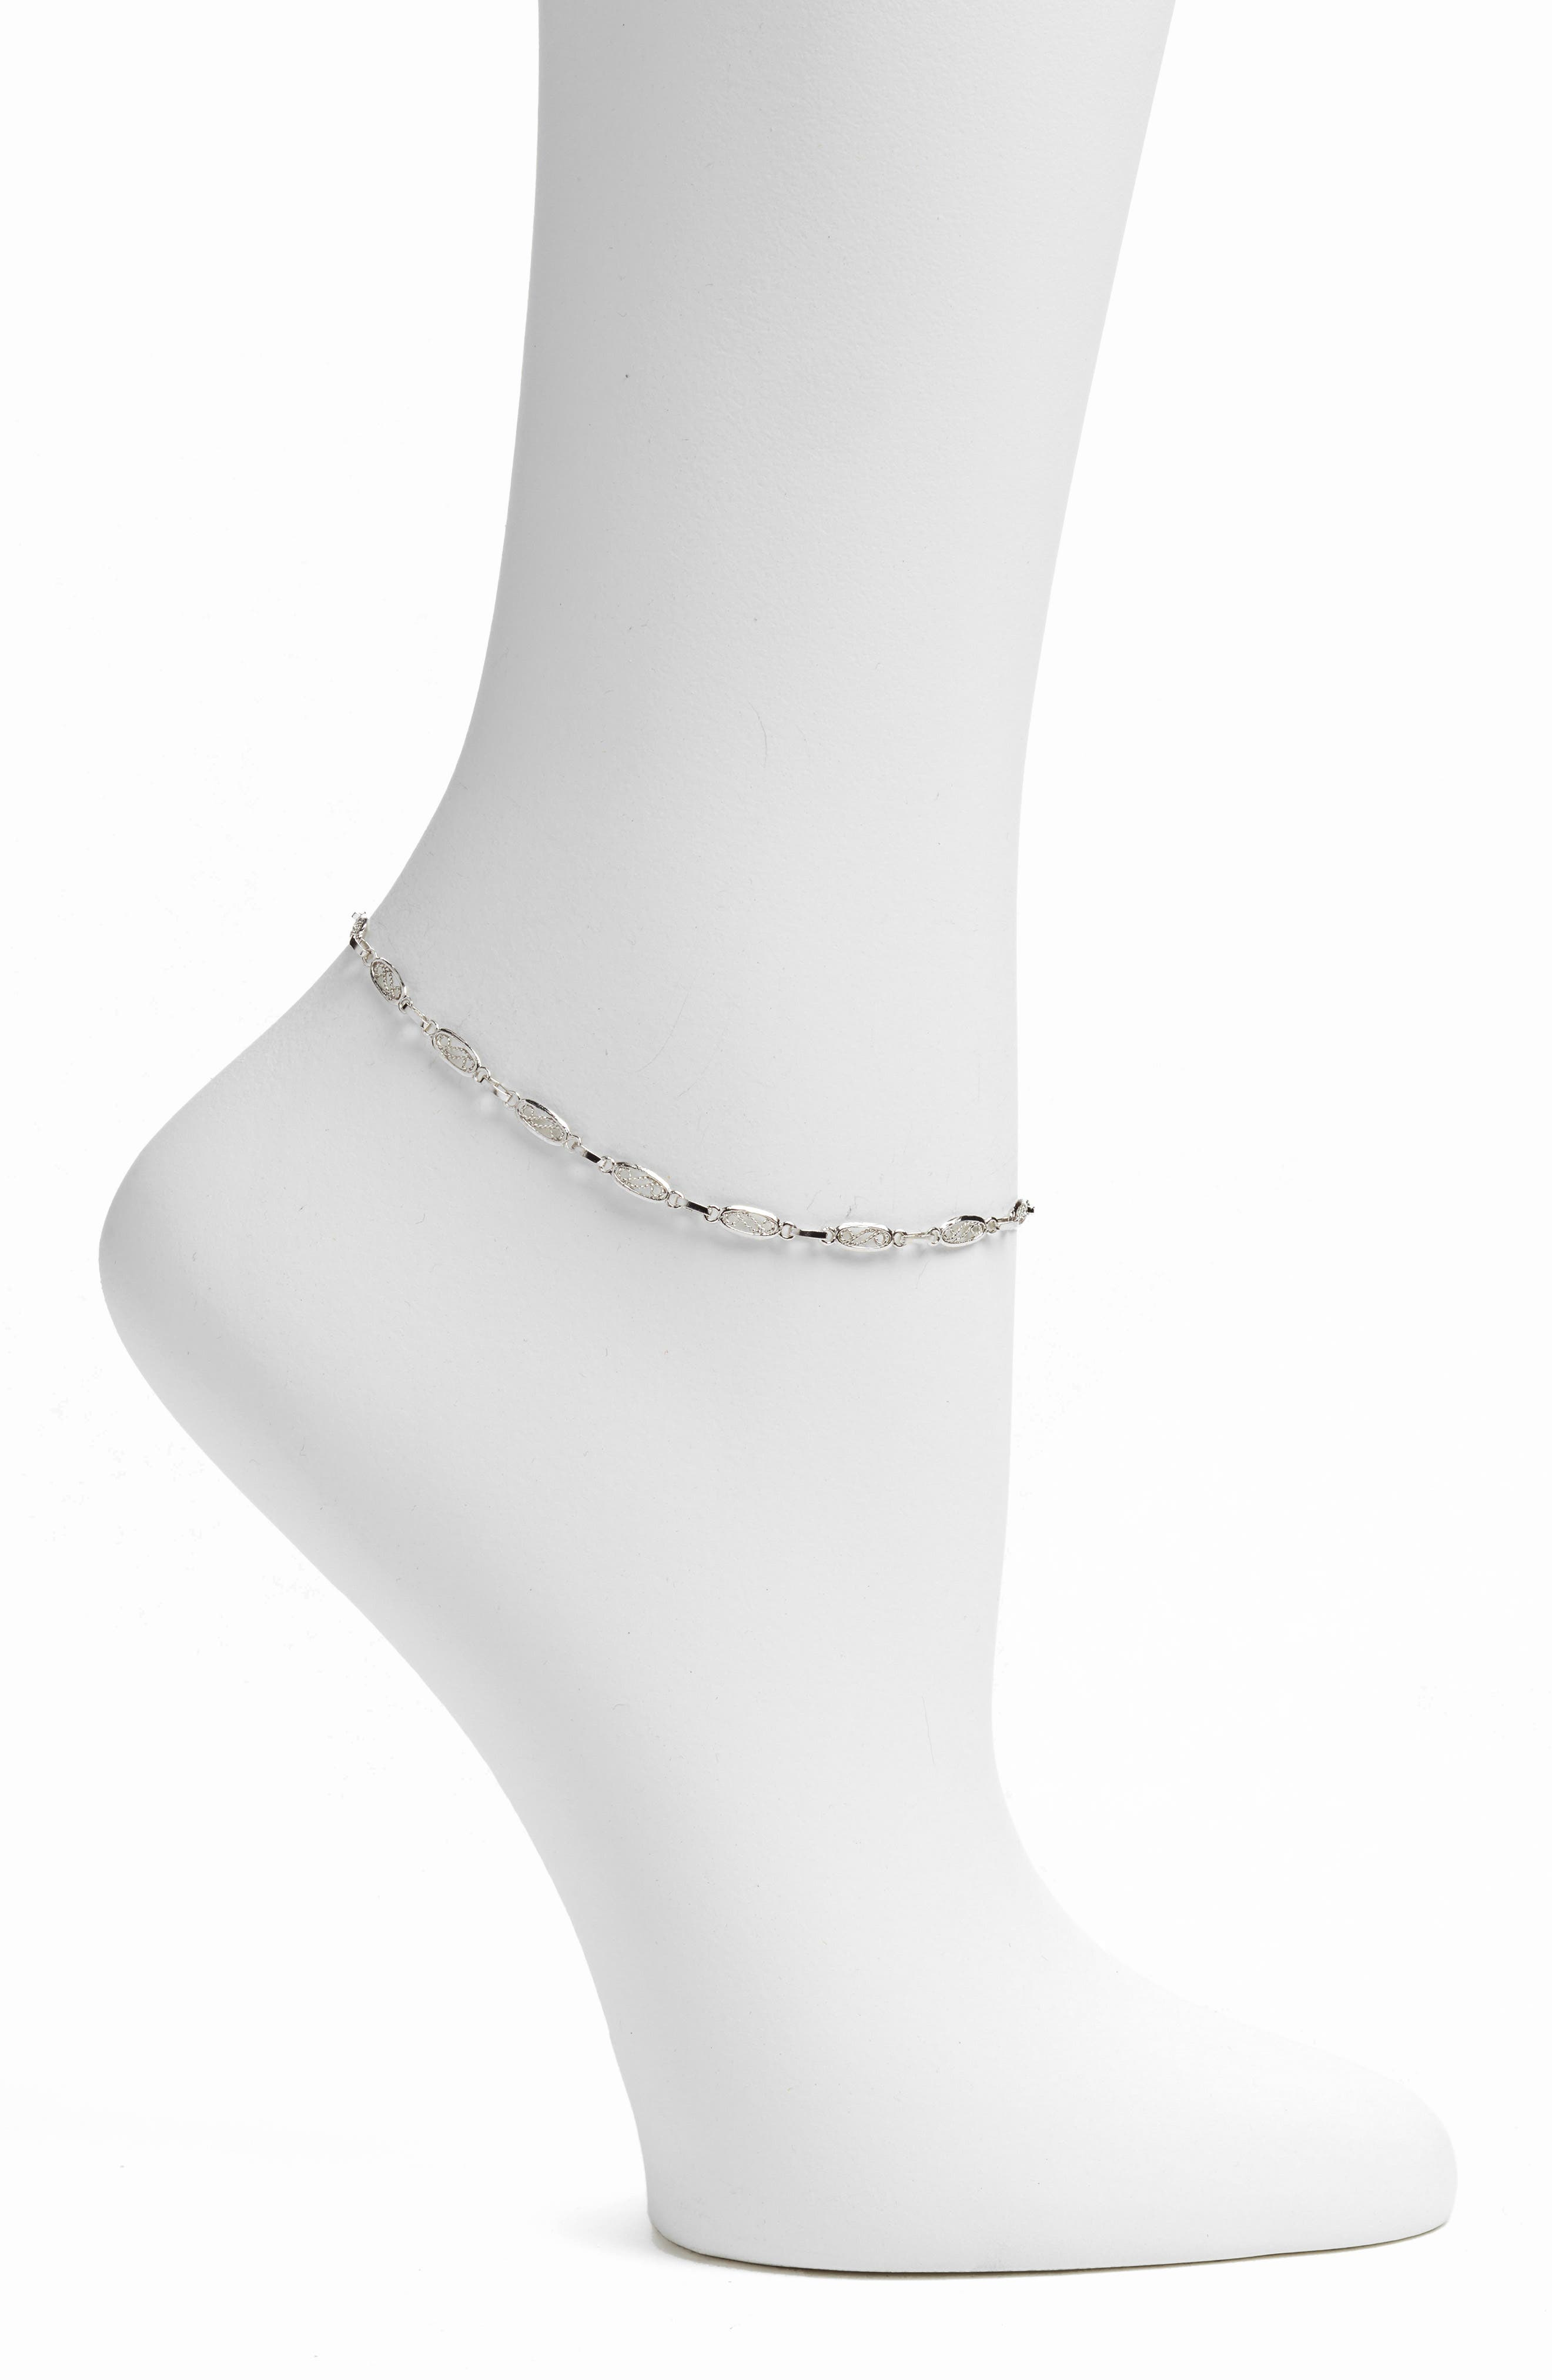 Javy Anklet,                         Main,                         color, Silver